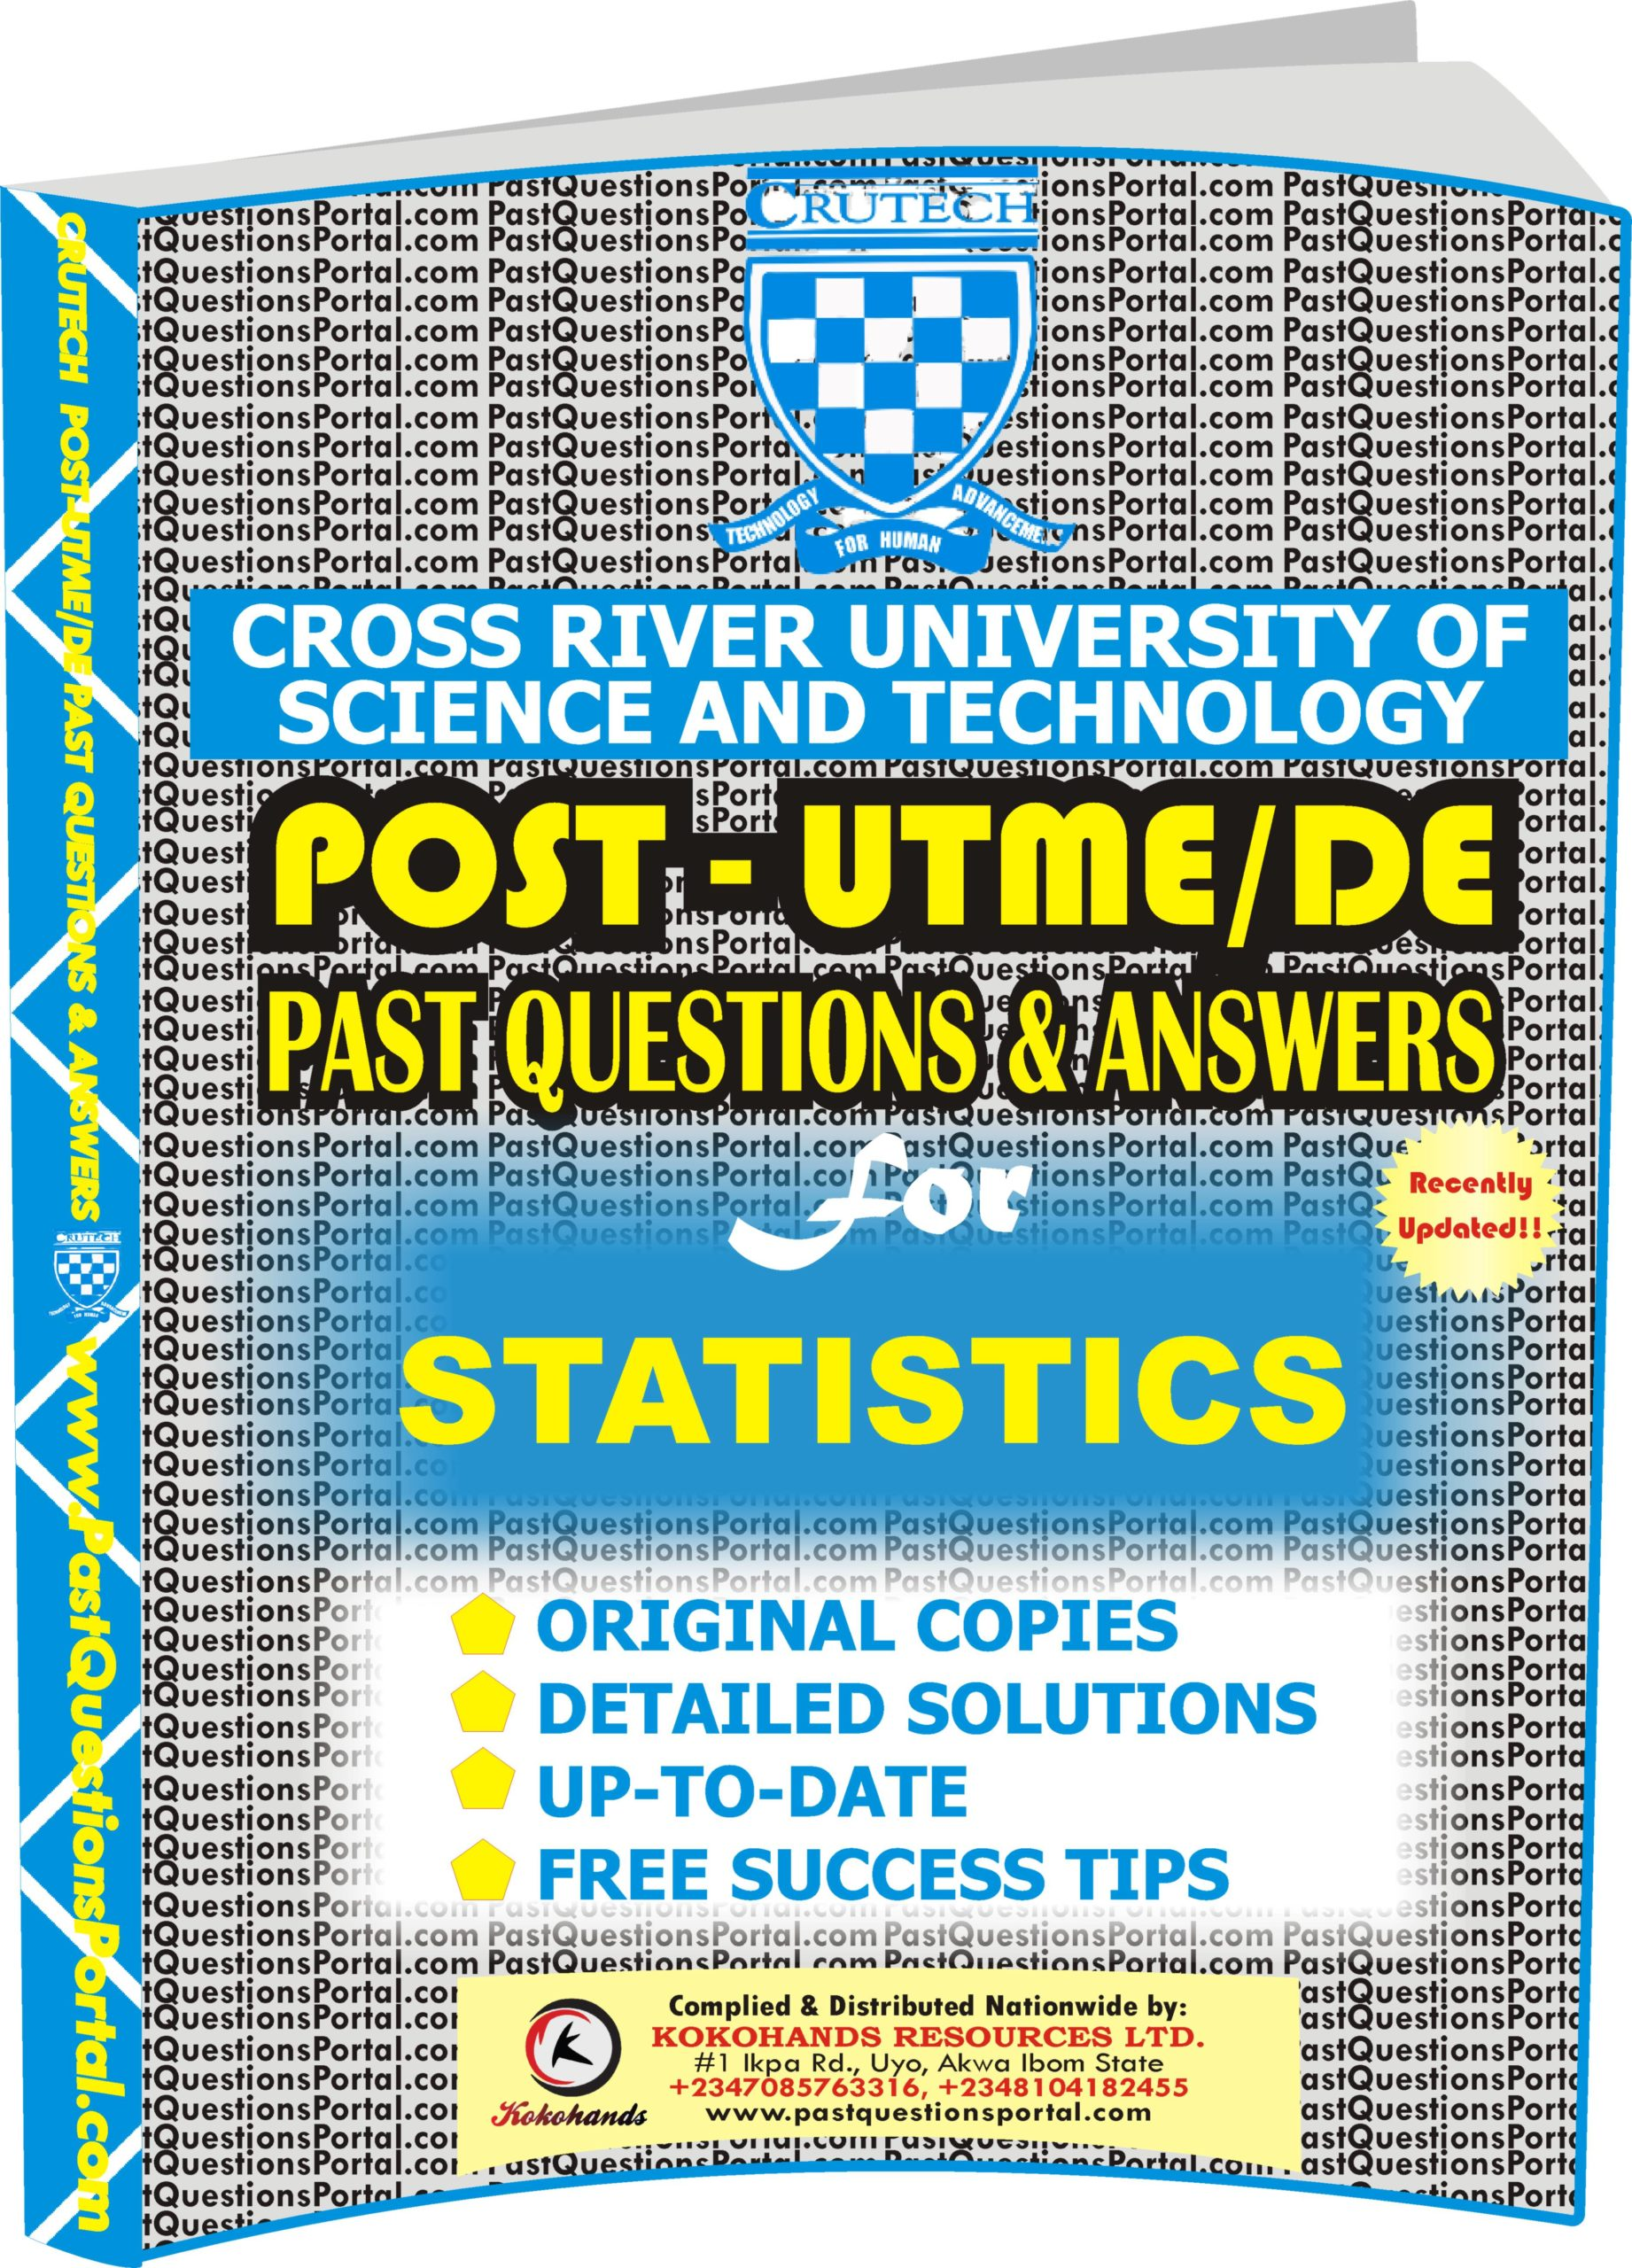 CRUTECH Post UTME Past Questions for STATISTICS